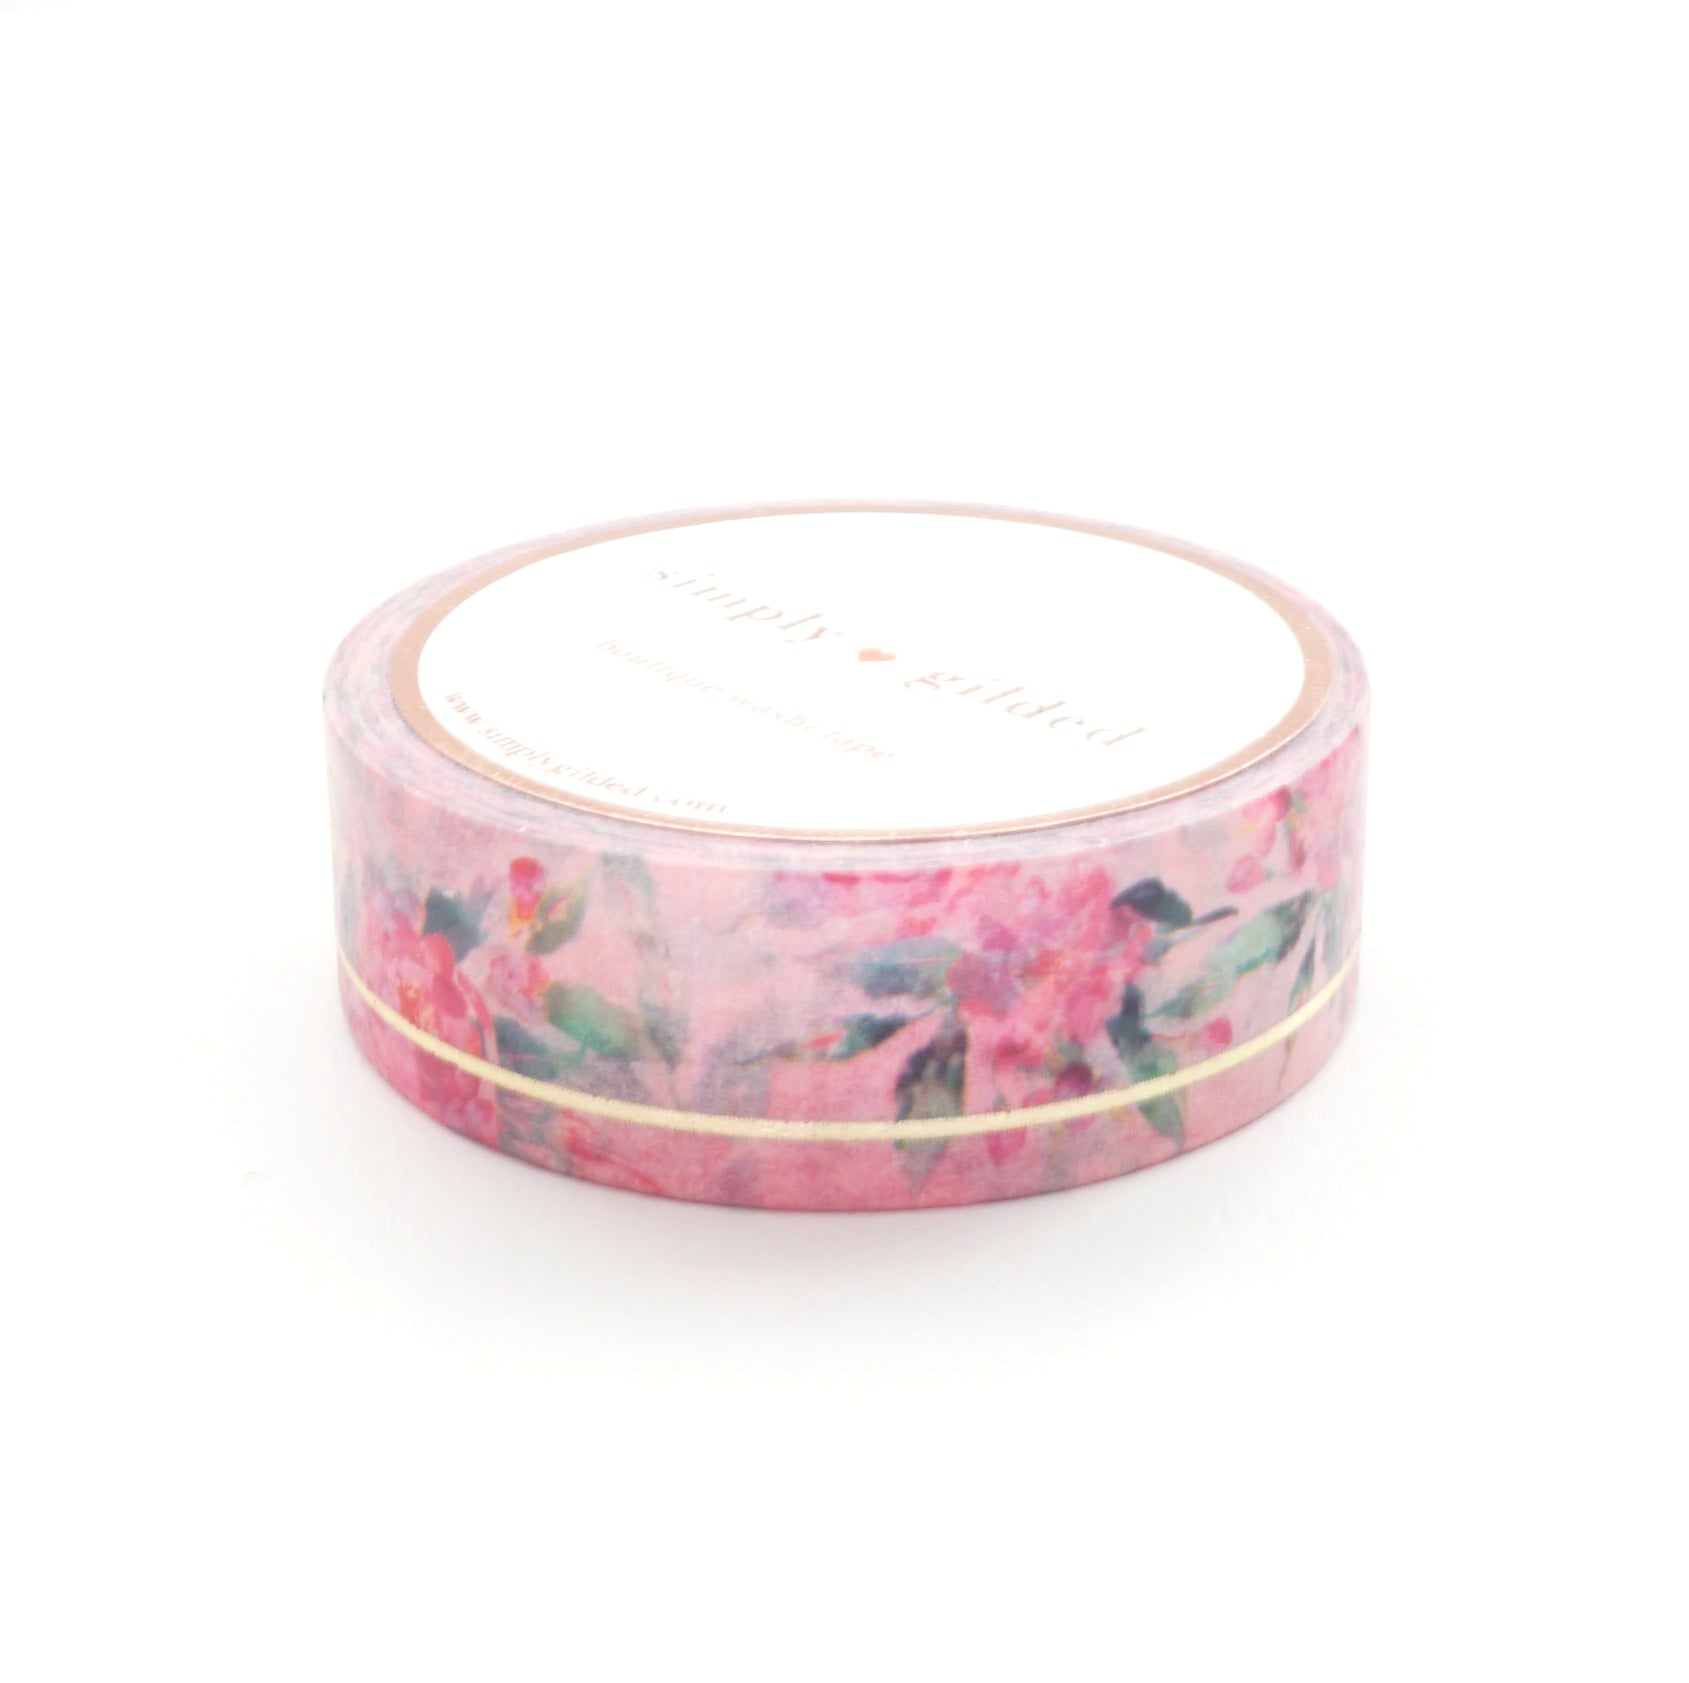 WASHI TAPE 15mm - Light Pink Floral SIMPLE LINE + lt. gold (May Release)